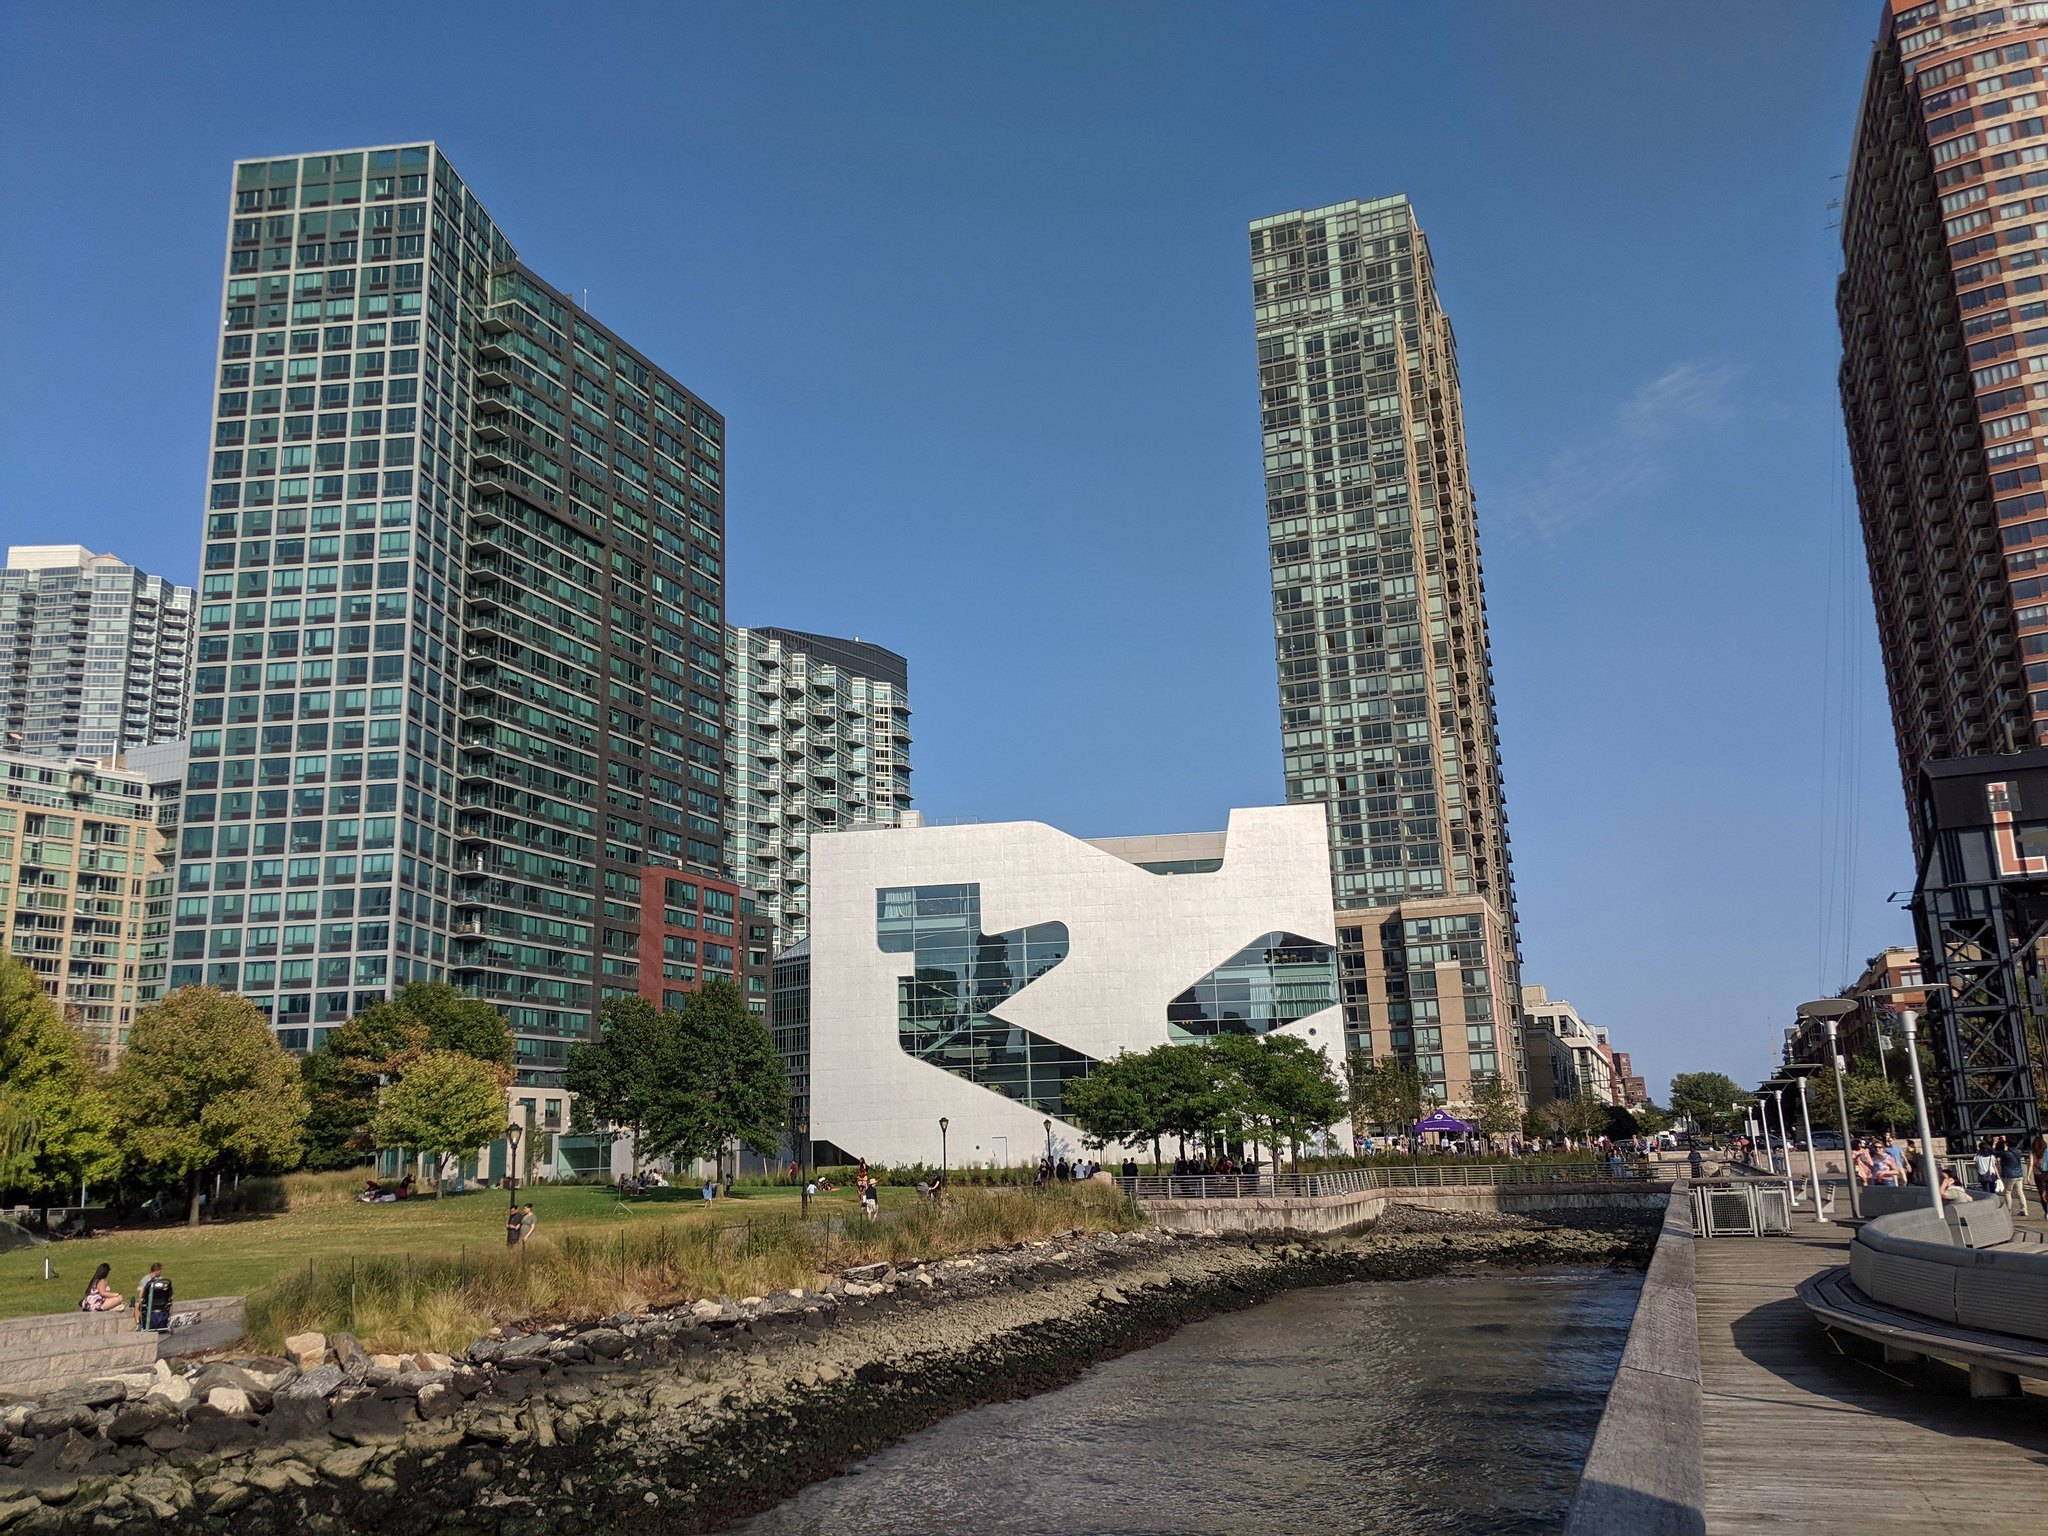 hunters point library in queens, nyc, one of the sites on tour in thedesignfestival.nyc